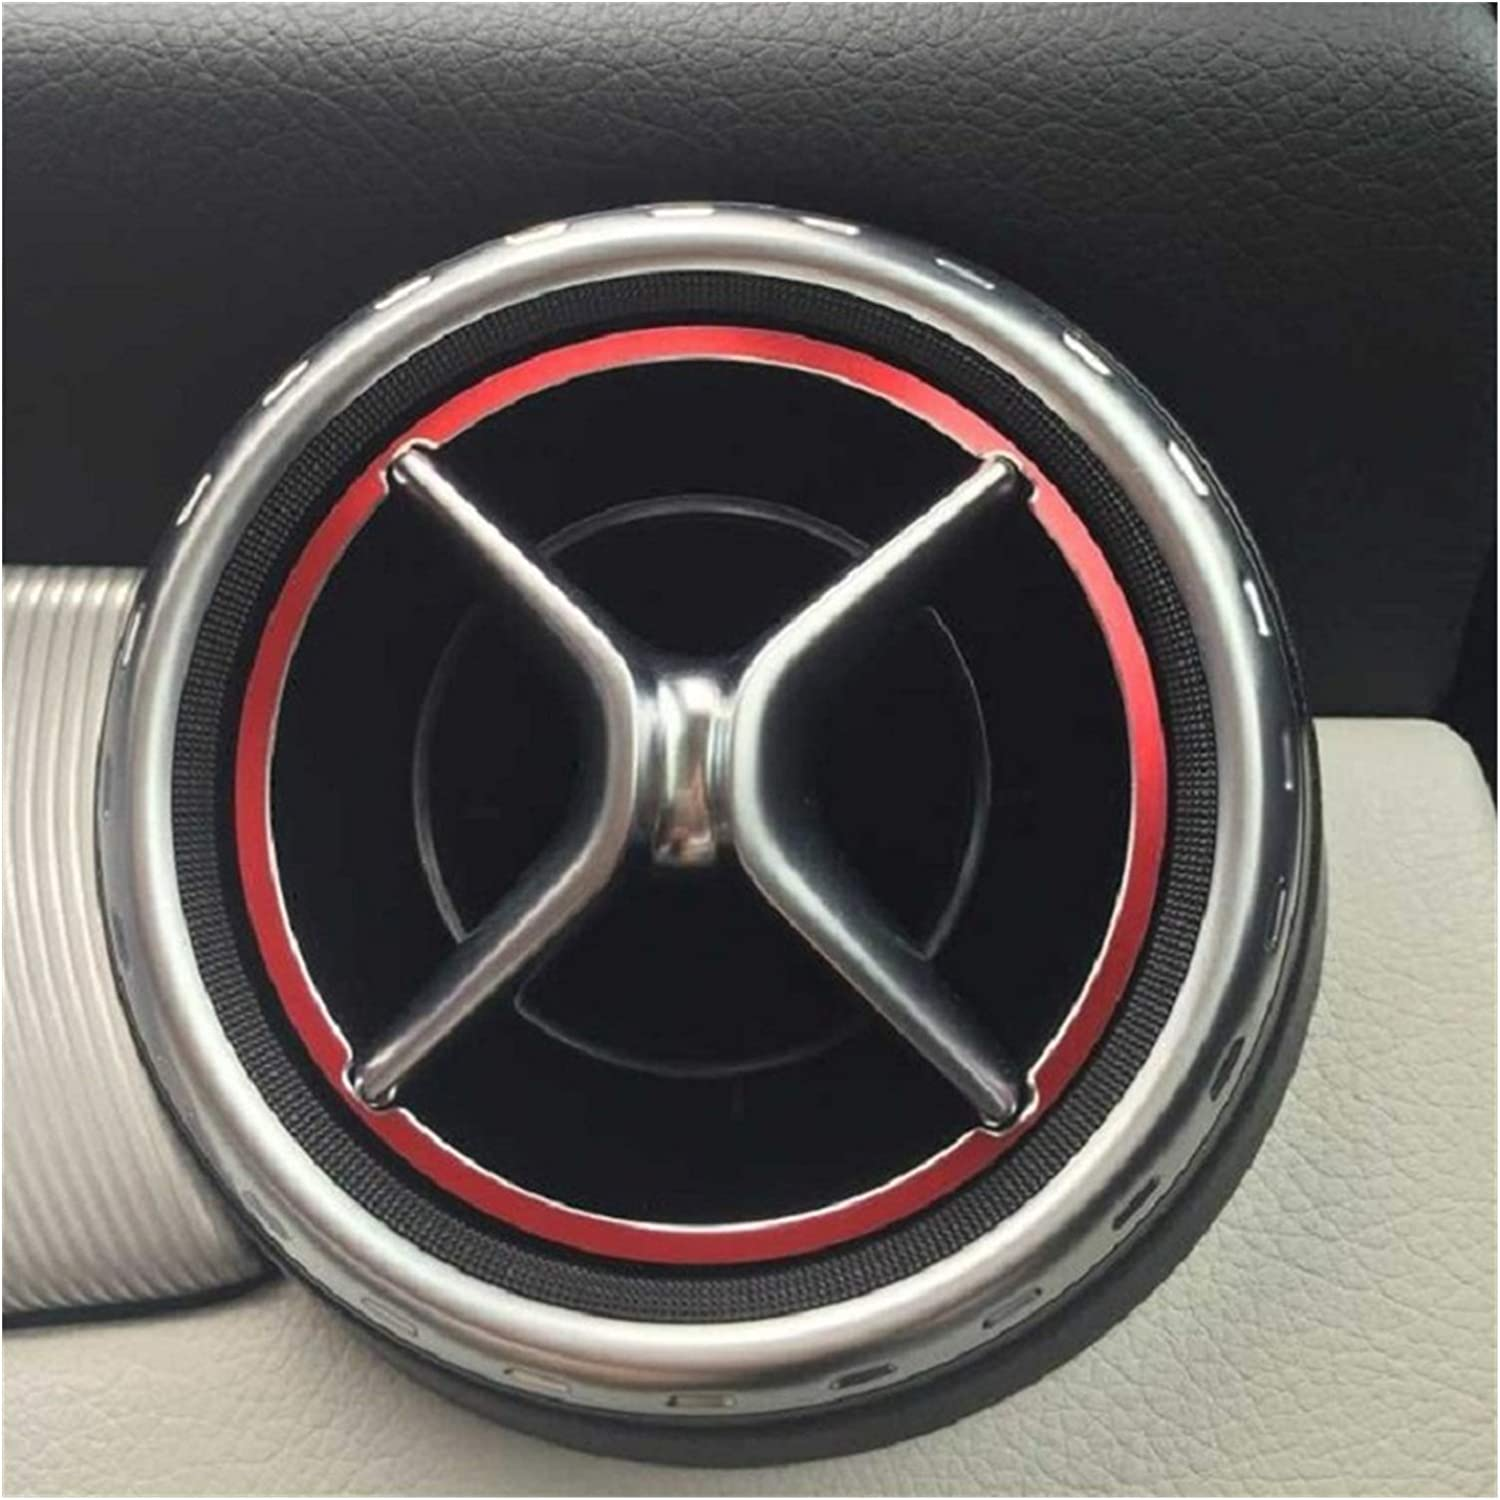 smoothly Hengliang Special sale item Store Angelguoguo Fit for G B A Outlet sale feature Benz Mercedes